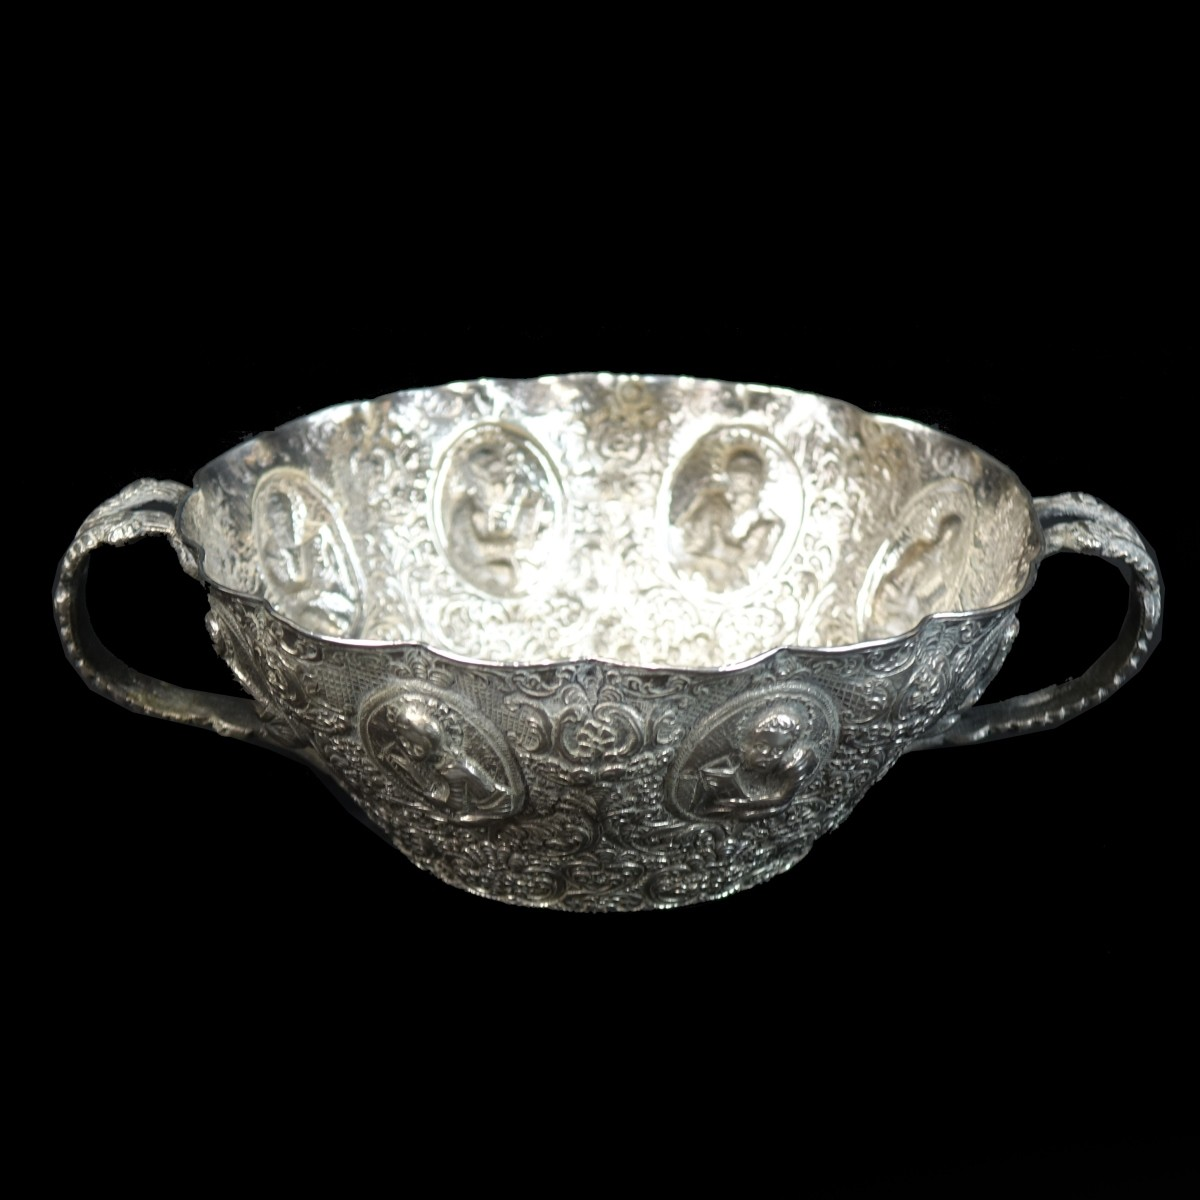 Antique Continental Silver Bowl